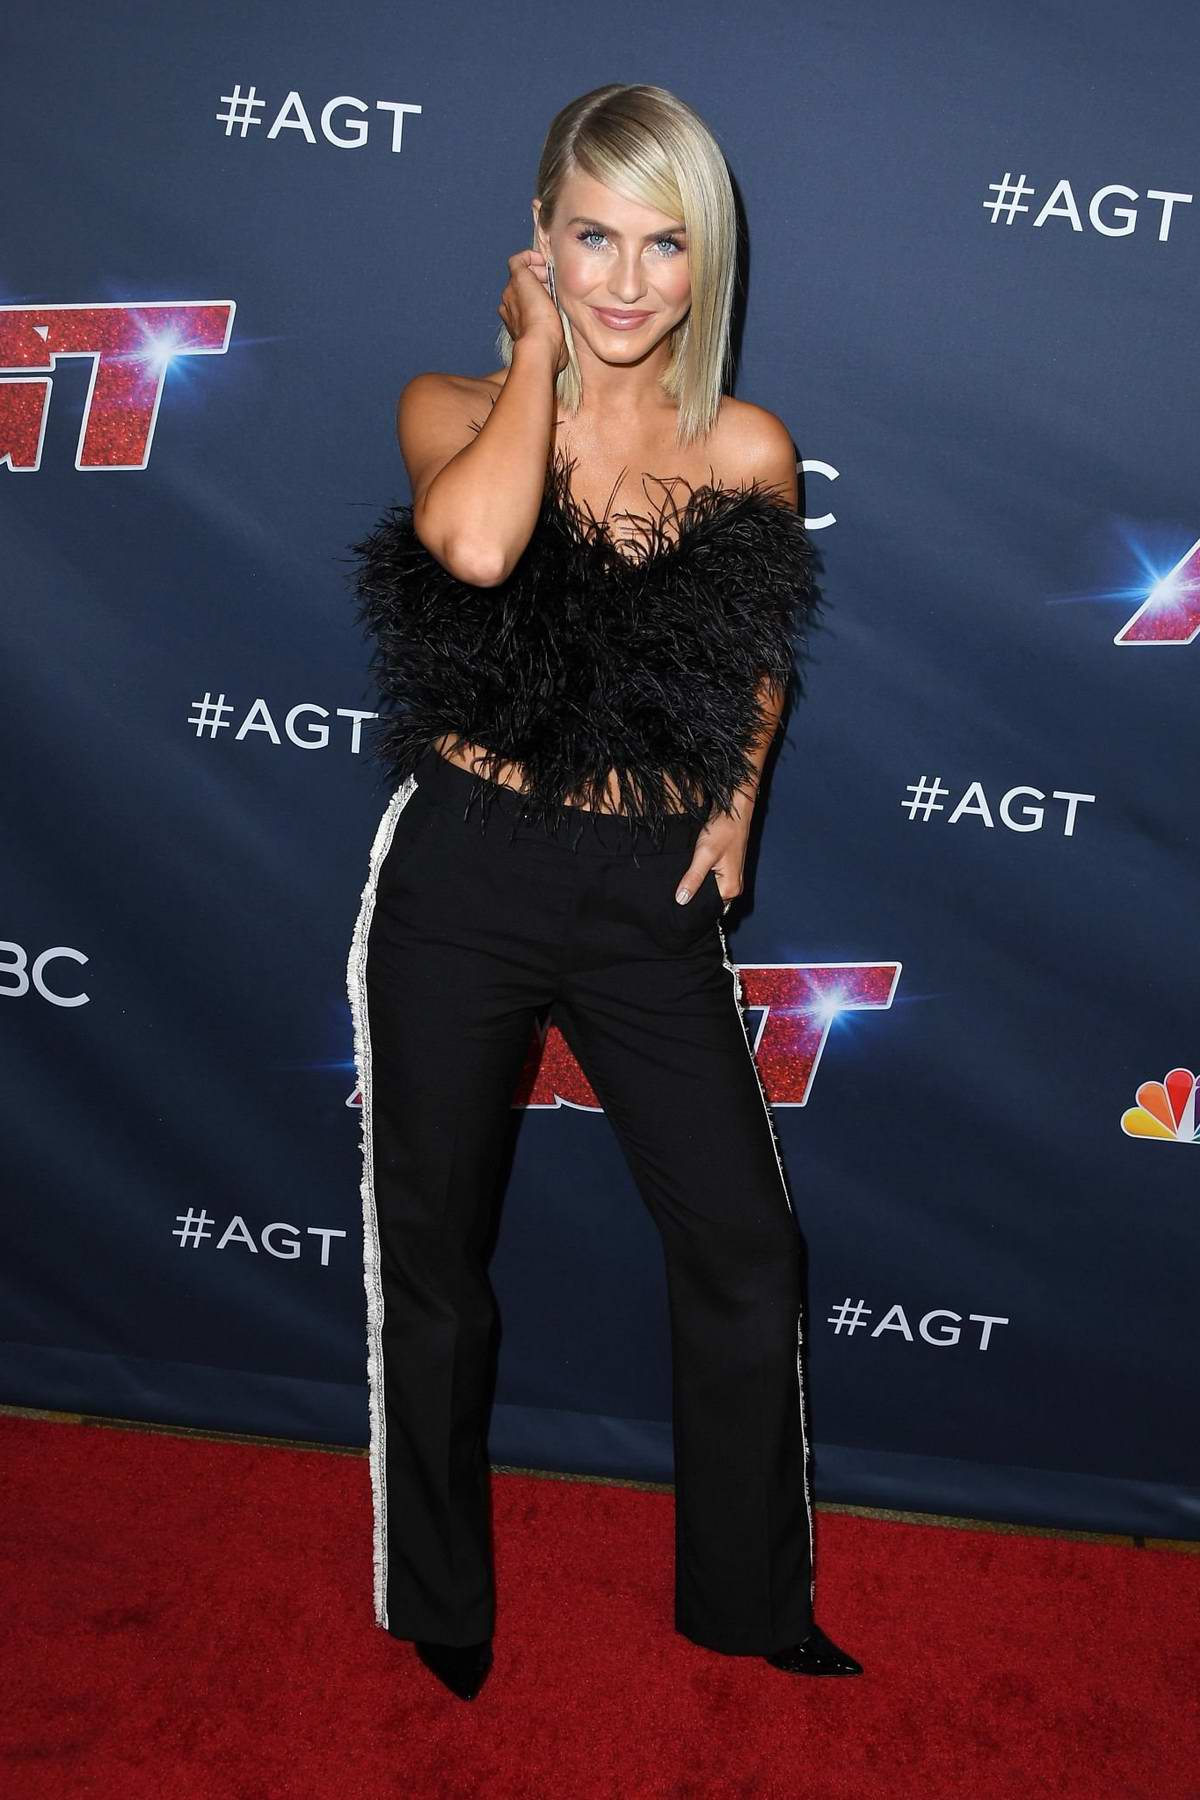 Julianne Hough attends the America's Got Talent Season 14 Live Show in Hollywood, California